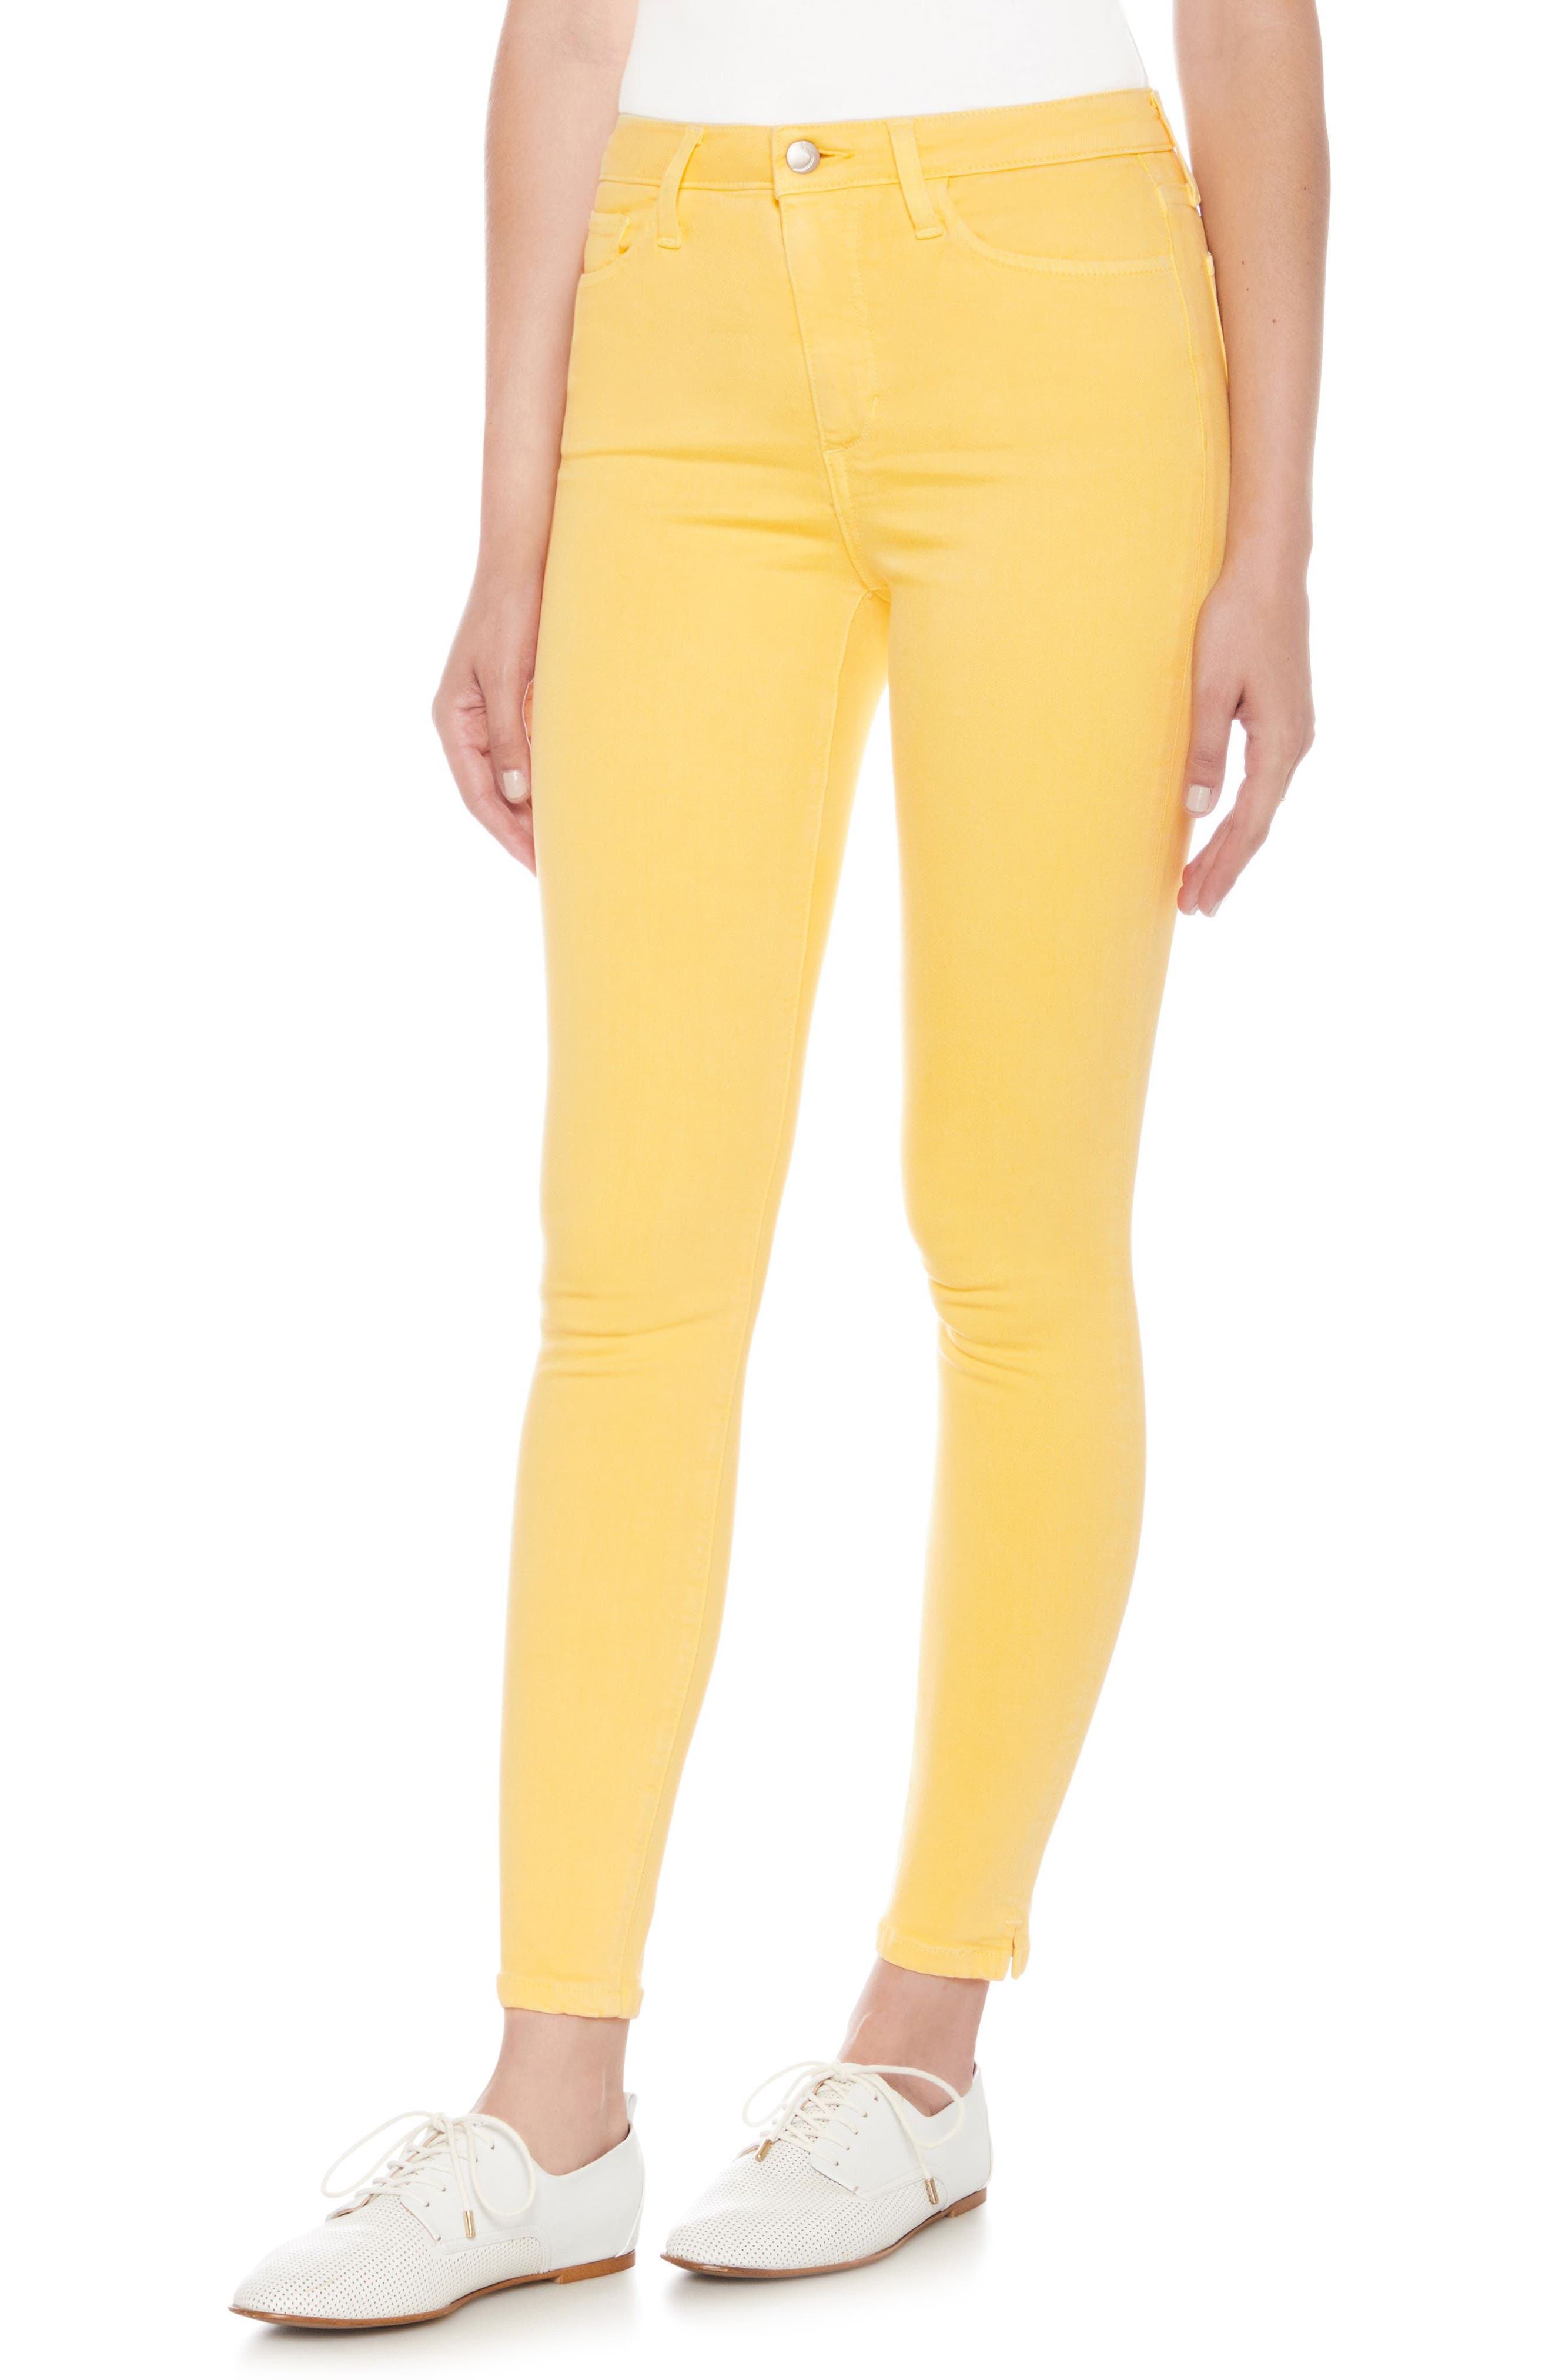 Charlie High Waist Ankle Skinny Jeans,                             Main thumbnail 1, color,                             Pale Marigold